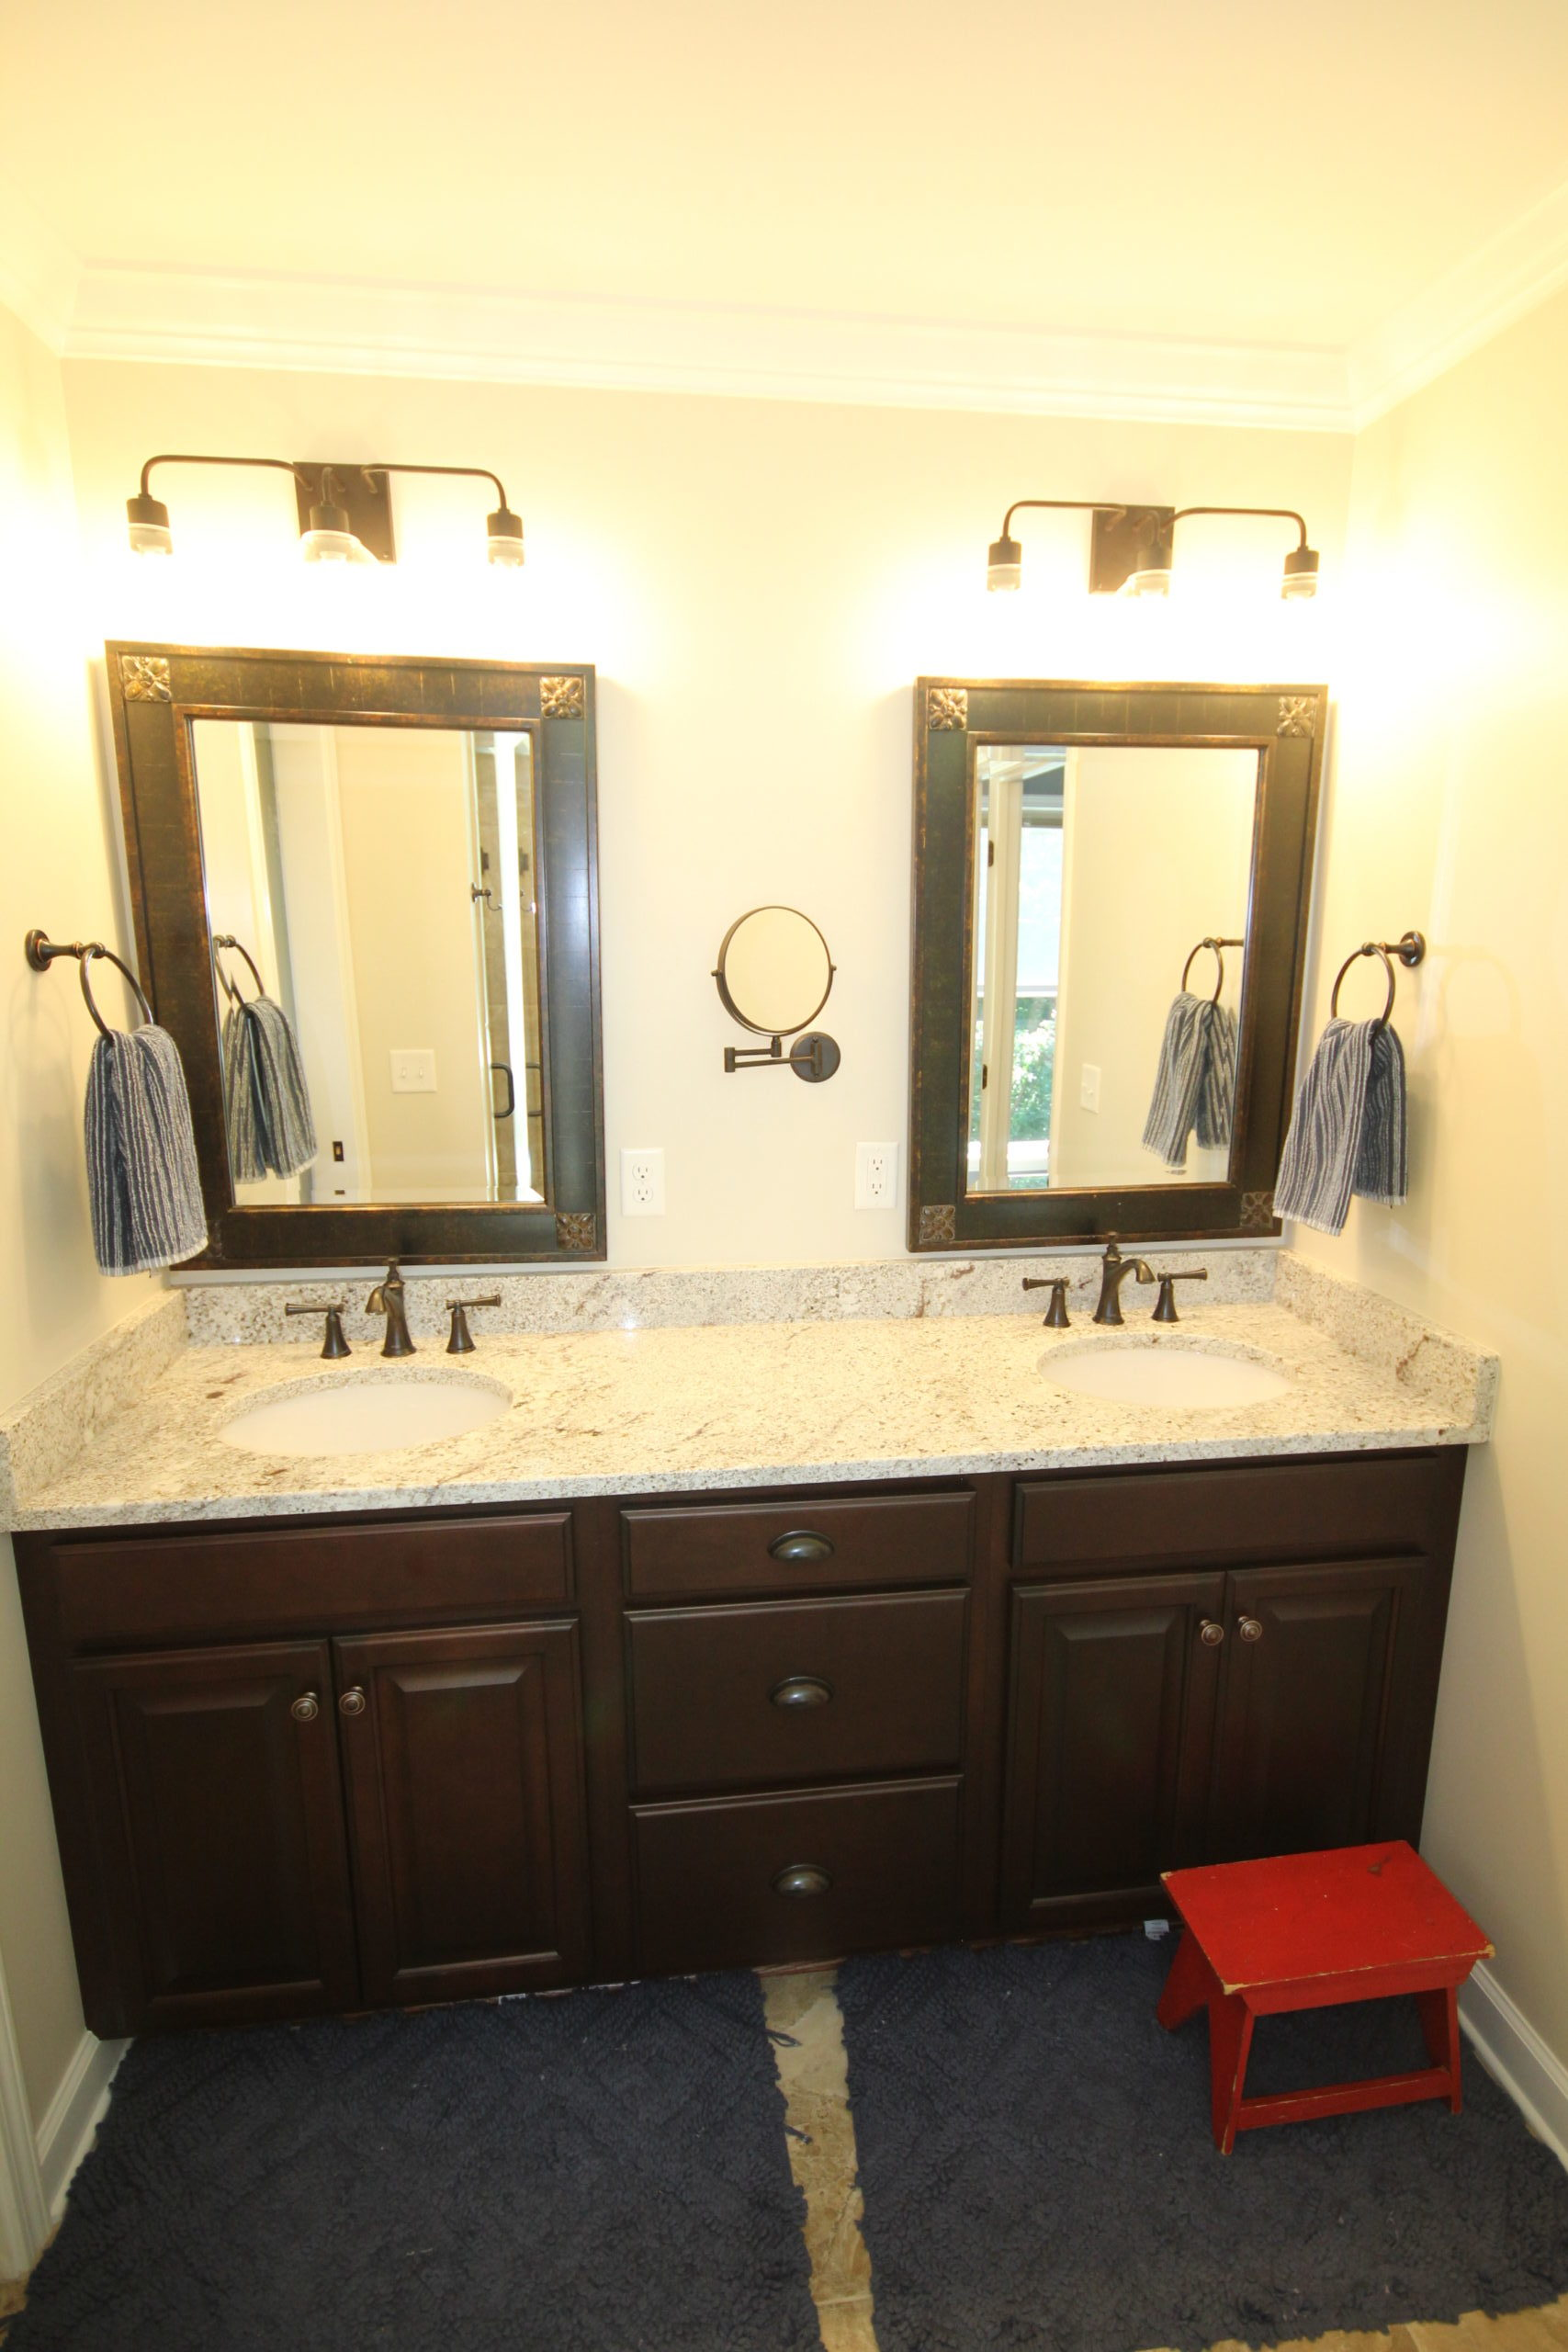 bathroom-remodeling-work-TAG-Builders-104-WW-Bathroom-remodel-3-scaled-e1586518102794